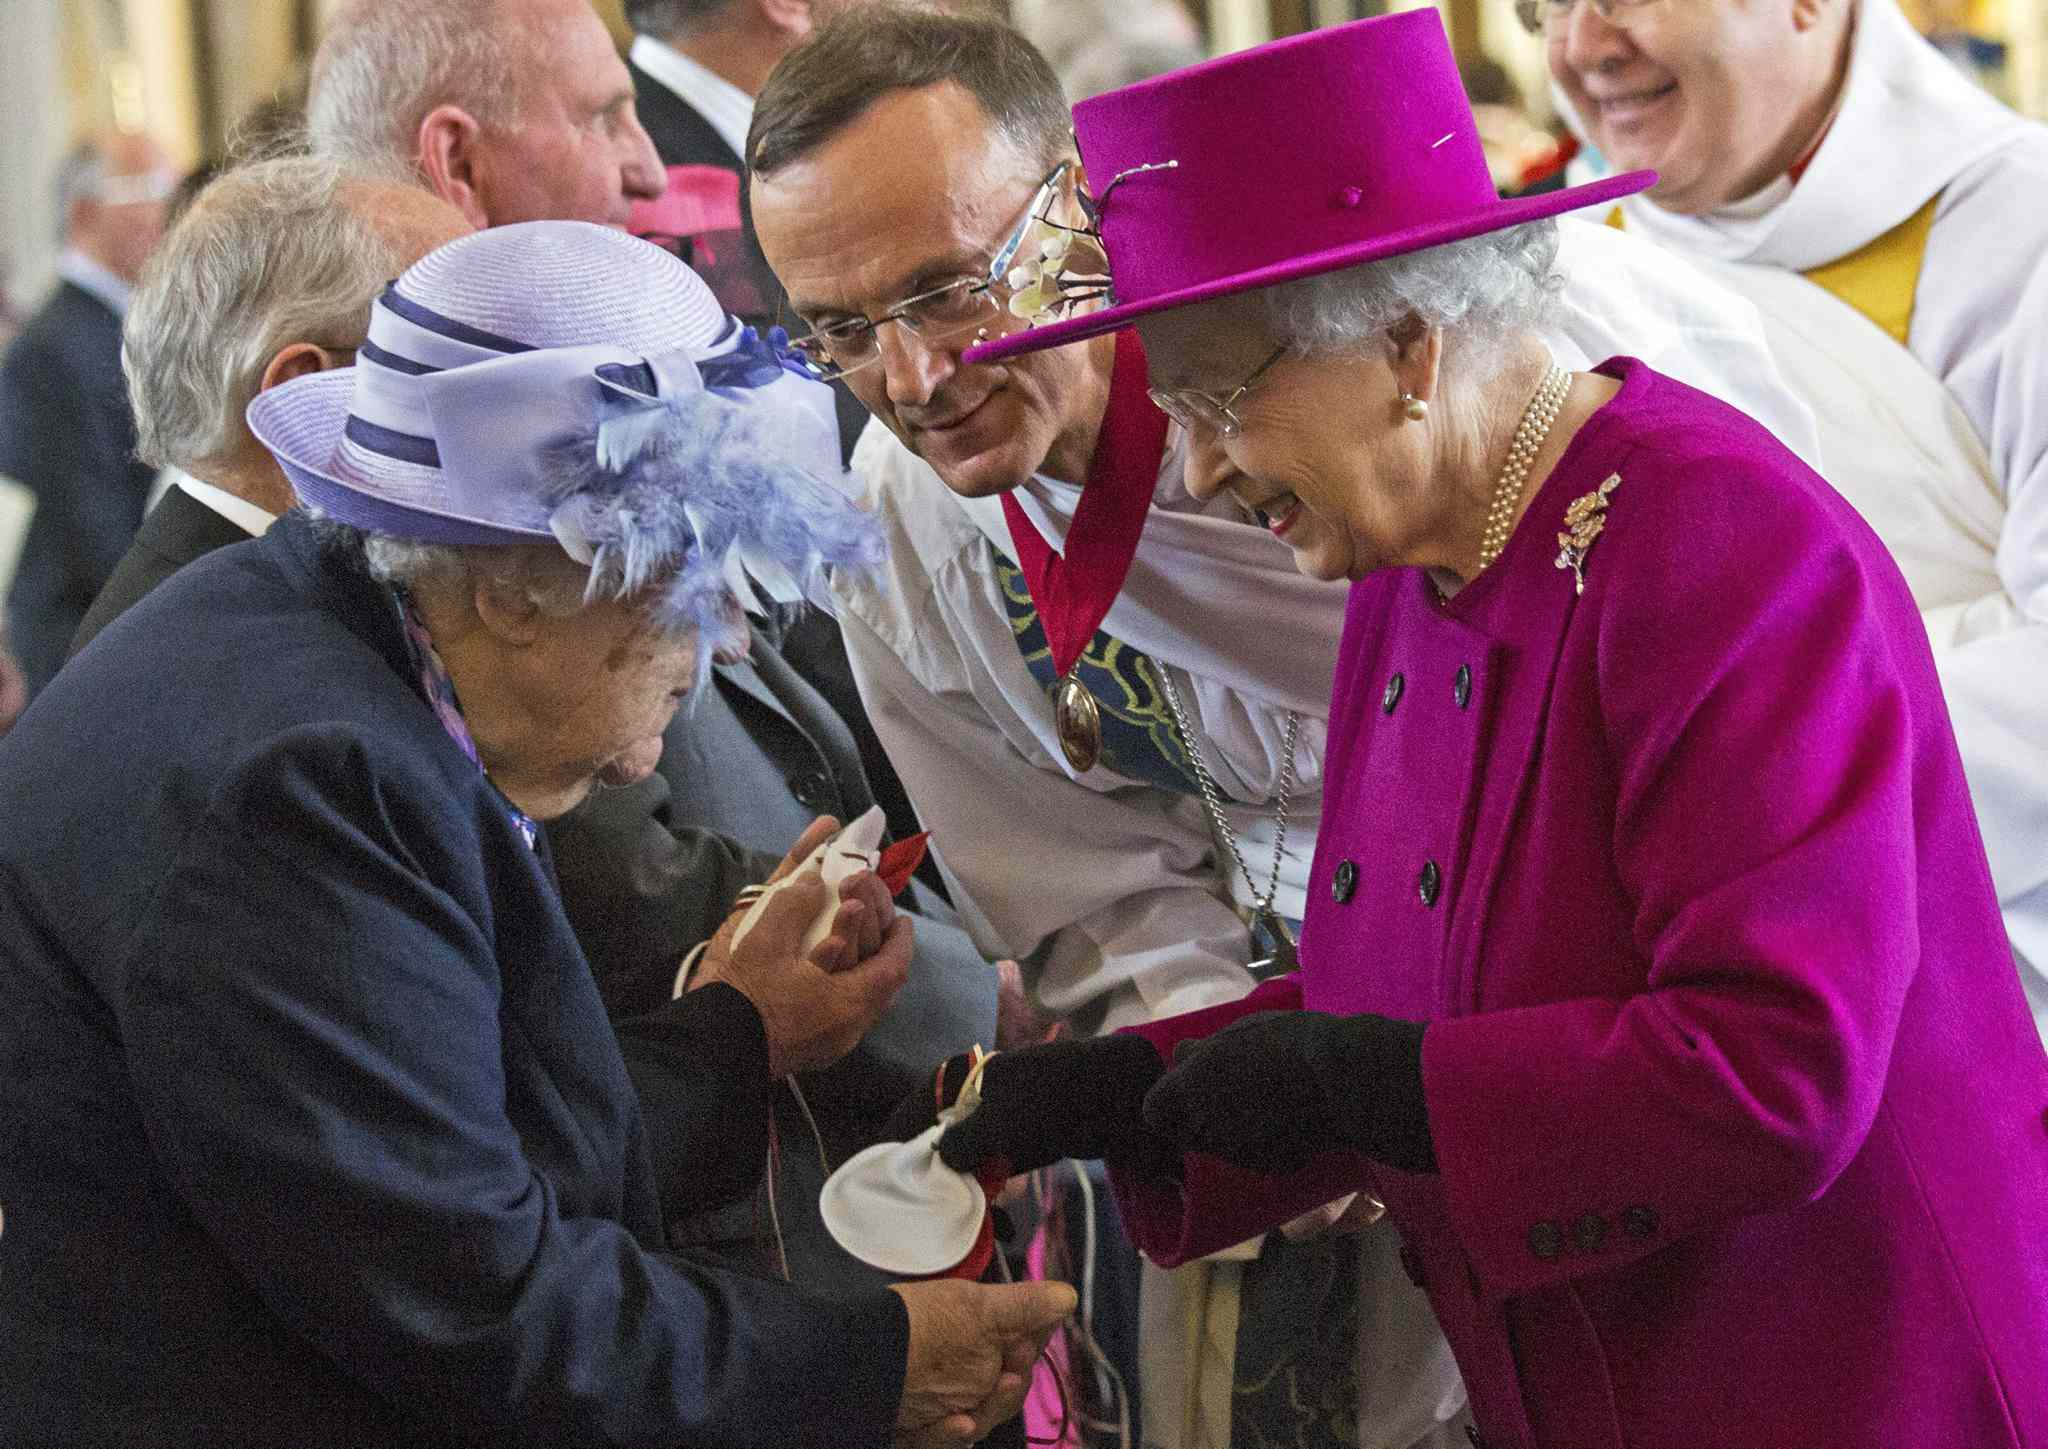 Britain's Queen Elizabeth II (right) speaks with pensioner Mrs Bradshaw during the Maundy Thursday service in Blackburn, England. Maundy Thursday is the Christian holy day falling on the Thursday before Easter. It commemorates the Maundy and Last Supper of Jesus Christ with the Apostles. The Queen commemorates Maundy by offering 'alms' to retired pensioners recommended by clergy and ministers of all denominations, in recognition of service to the church and to the local community.